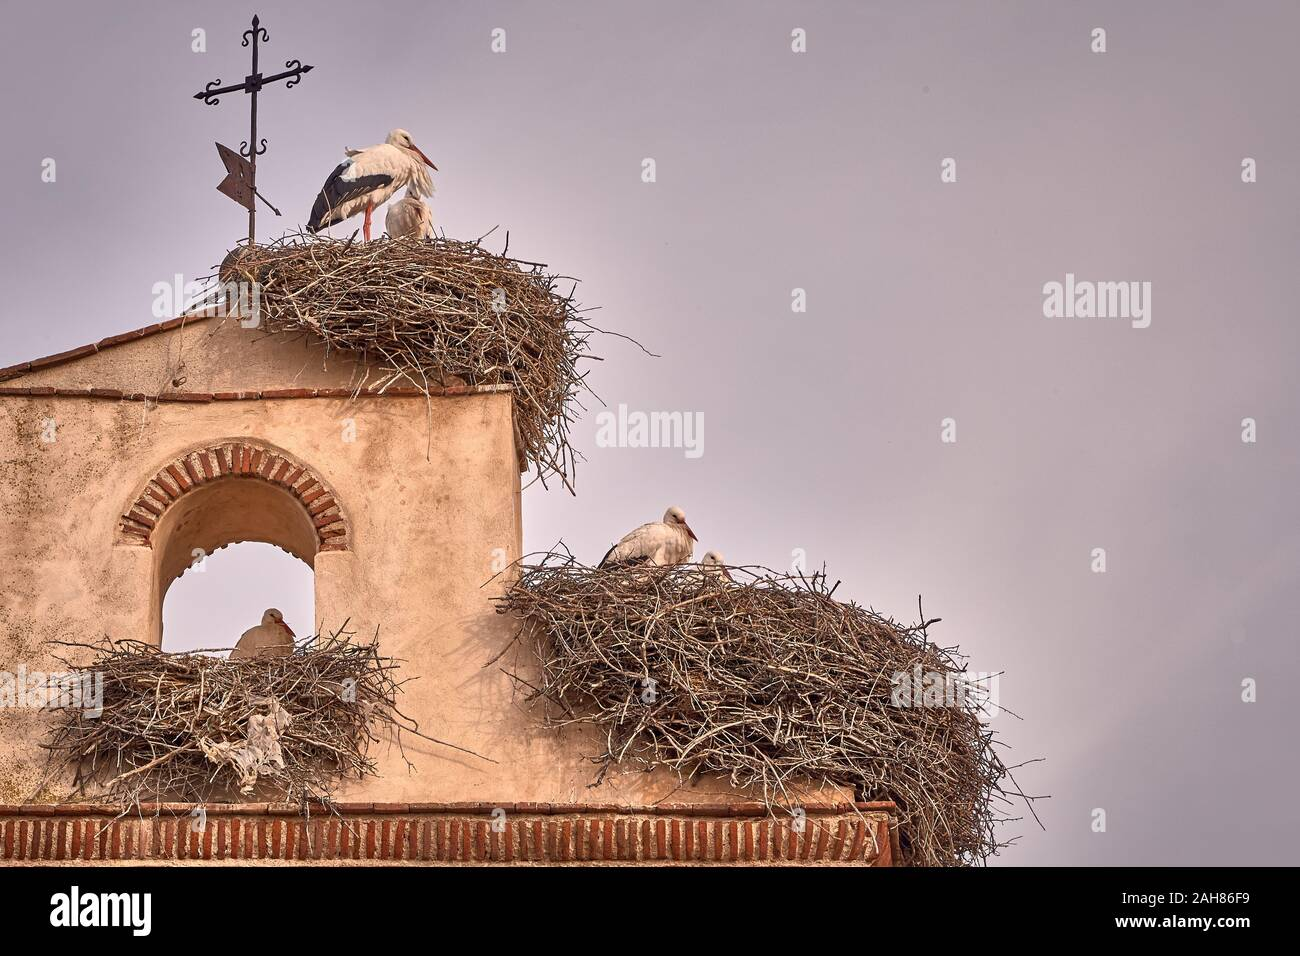 beautiful storks in a spring sunset on the belfry of a church Stock Photo